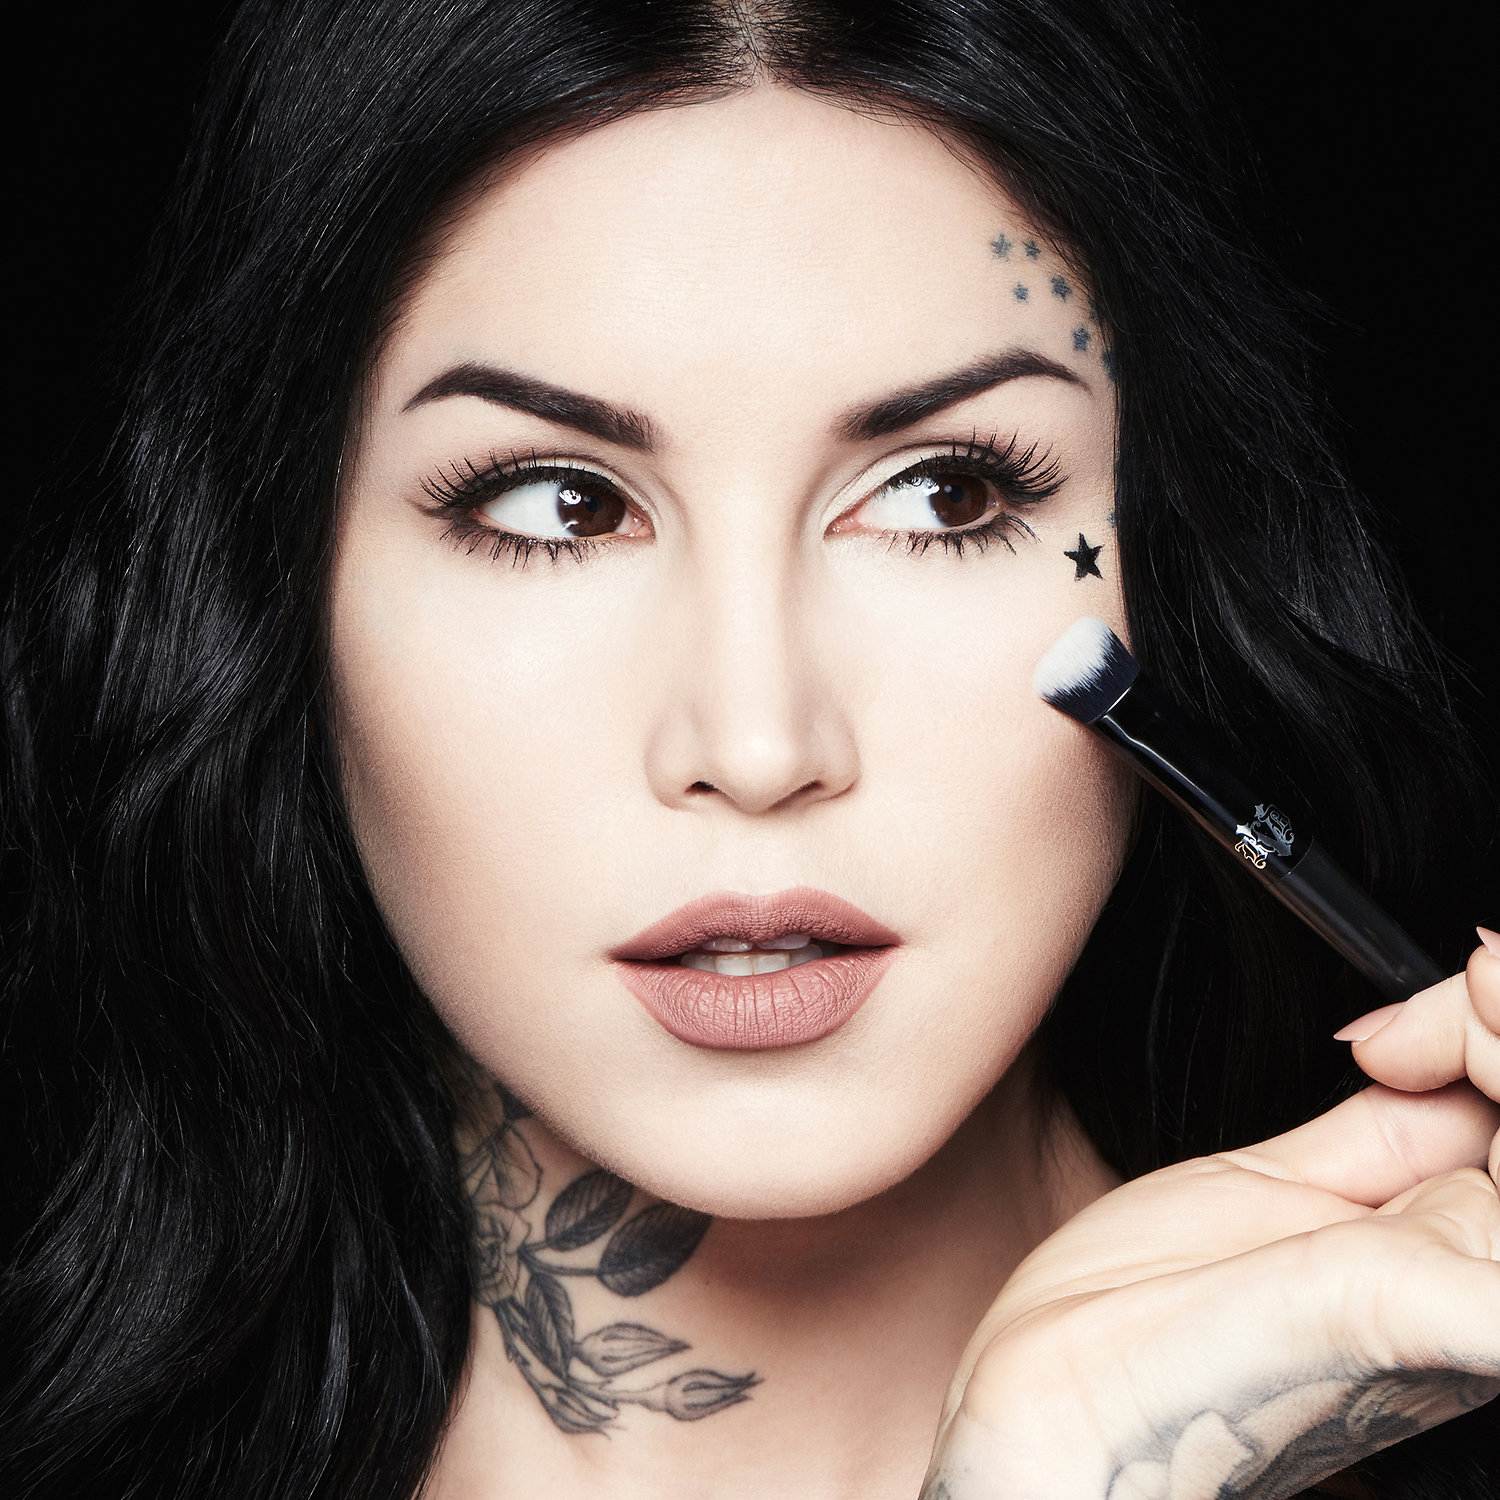 Kat Von D Concealer Powder Brushes For Fall 2016 News